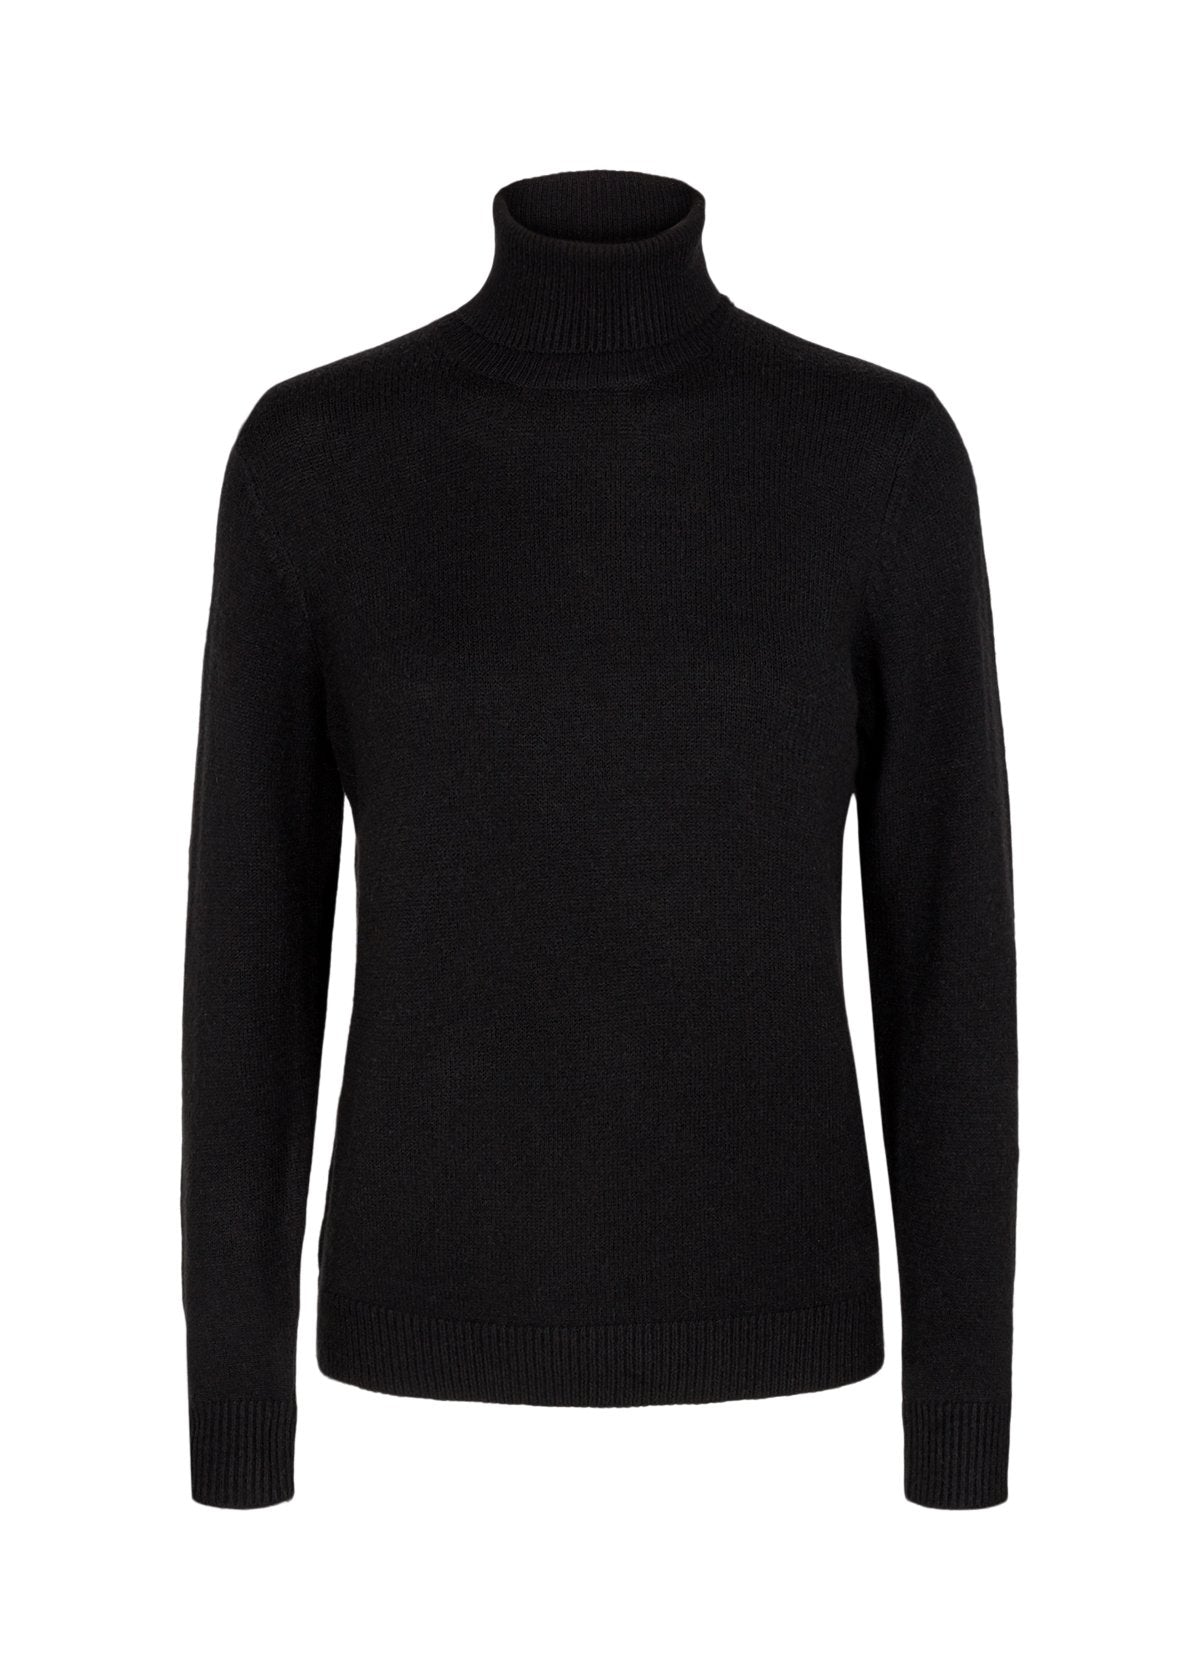 Soya Concept Blissa 11 black turtleneck sweater 33003